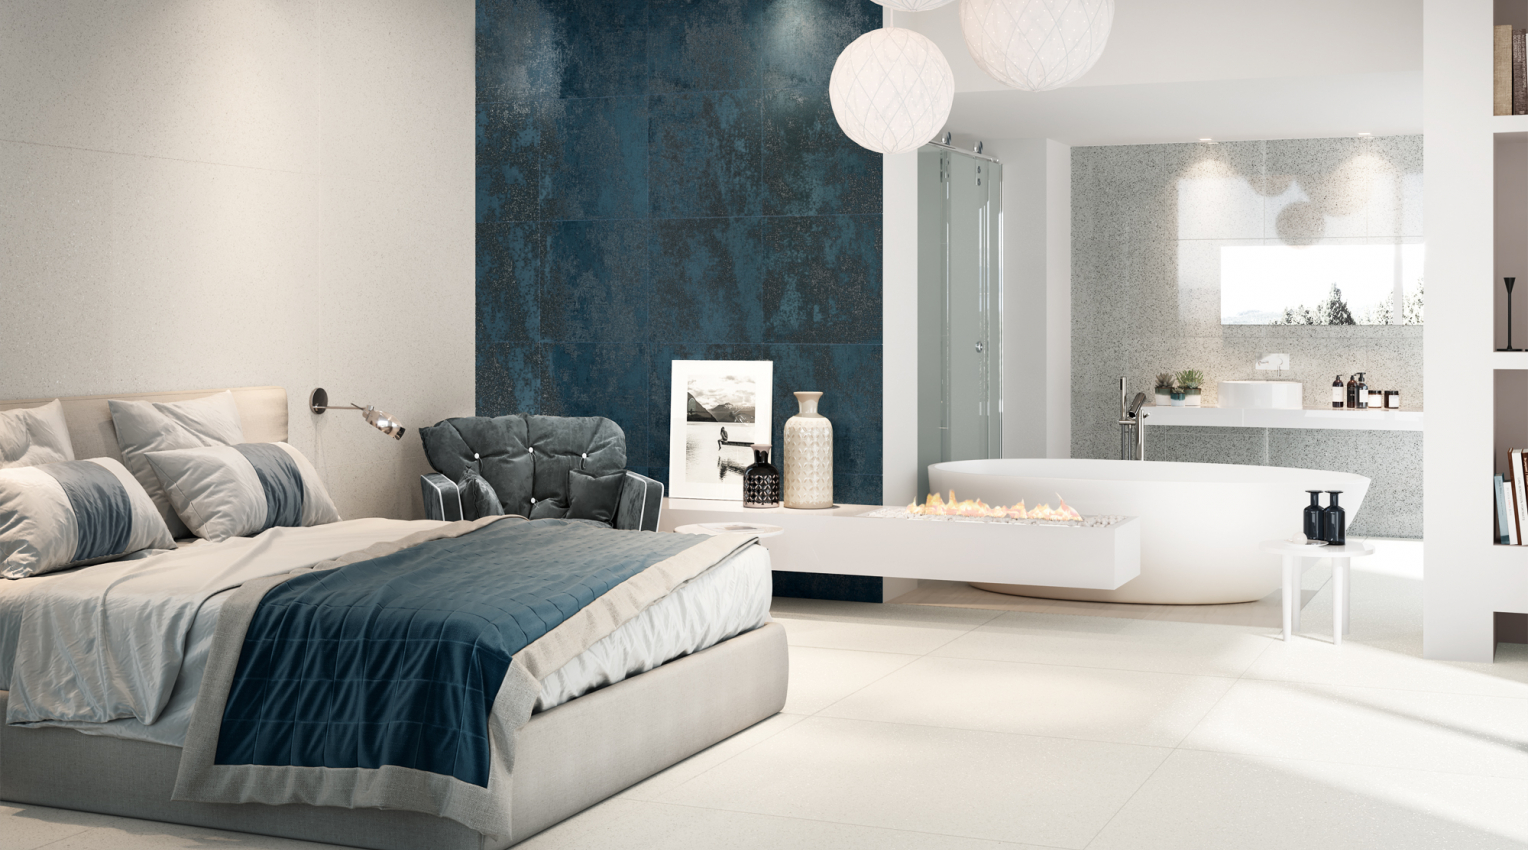 Bedroom blue and white inspiration2